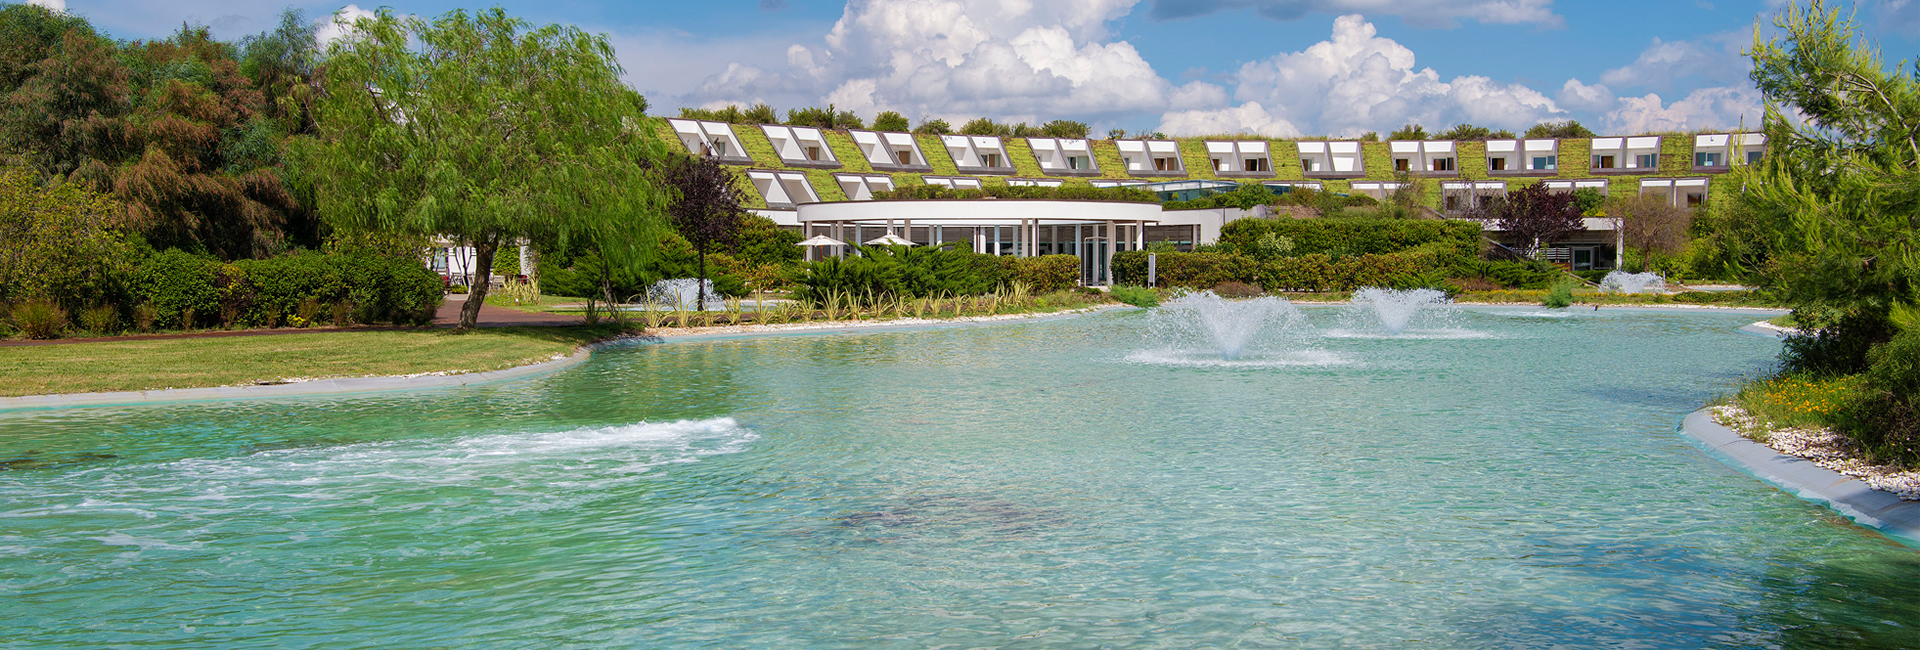 Kalidria hotel thalasso spa footer basso